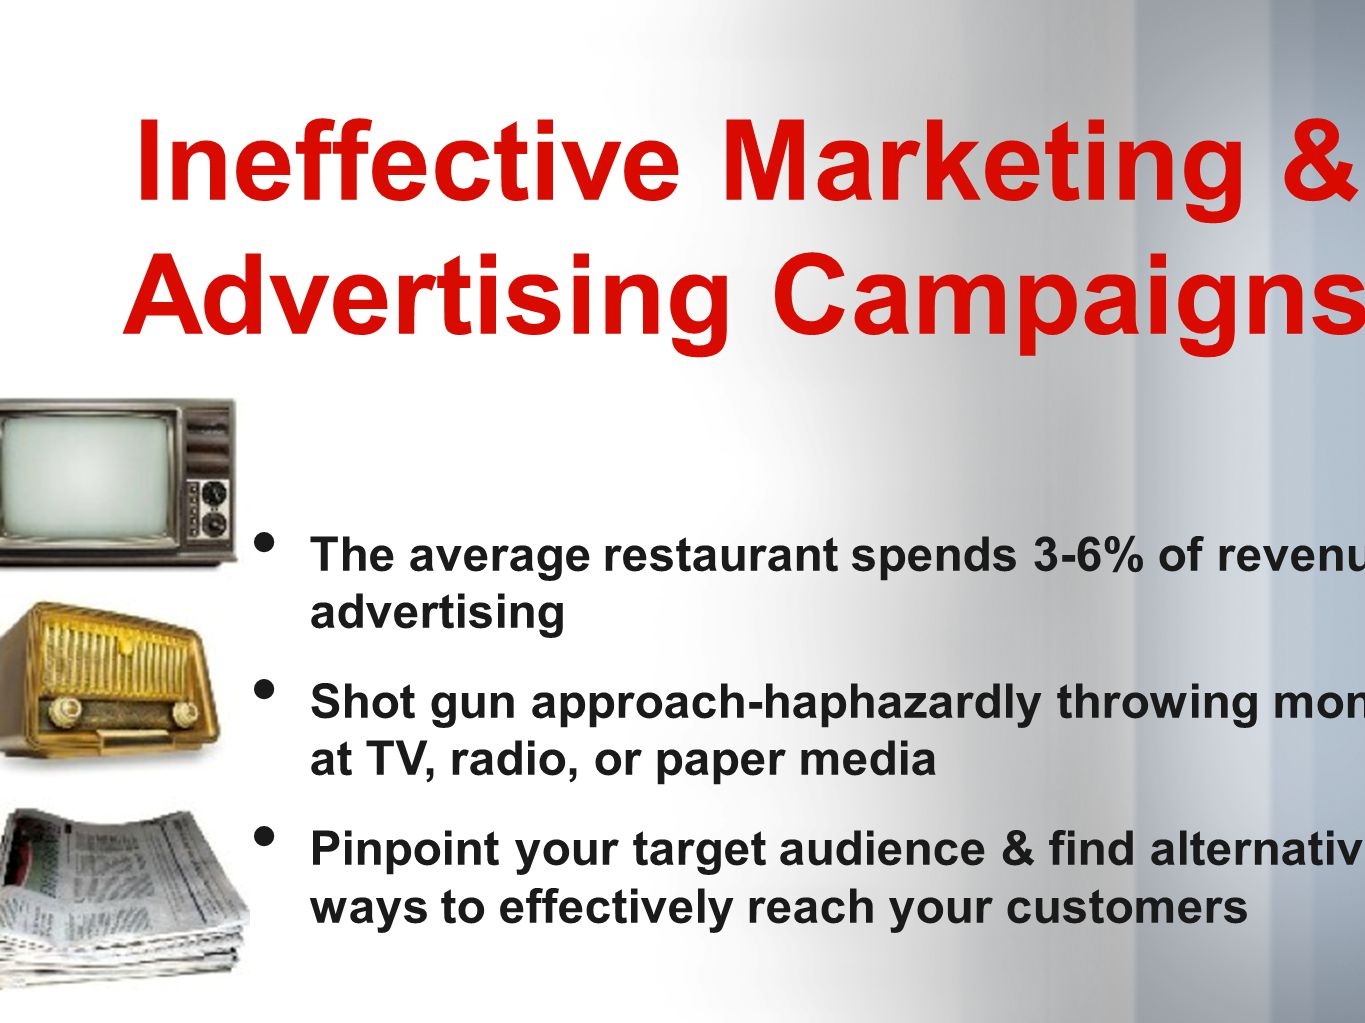 Ineffective Marketing & Advertising Campaigns The average restaurant spends 3-6% of revenues advertising Shot gun approach-haphazardly throwing money at TV, radio, or paper media Pinpoint your target audience & find alternative ways to effectively reach your customers